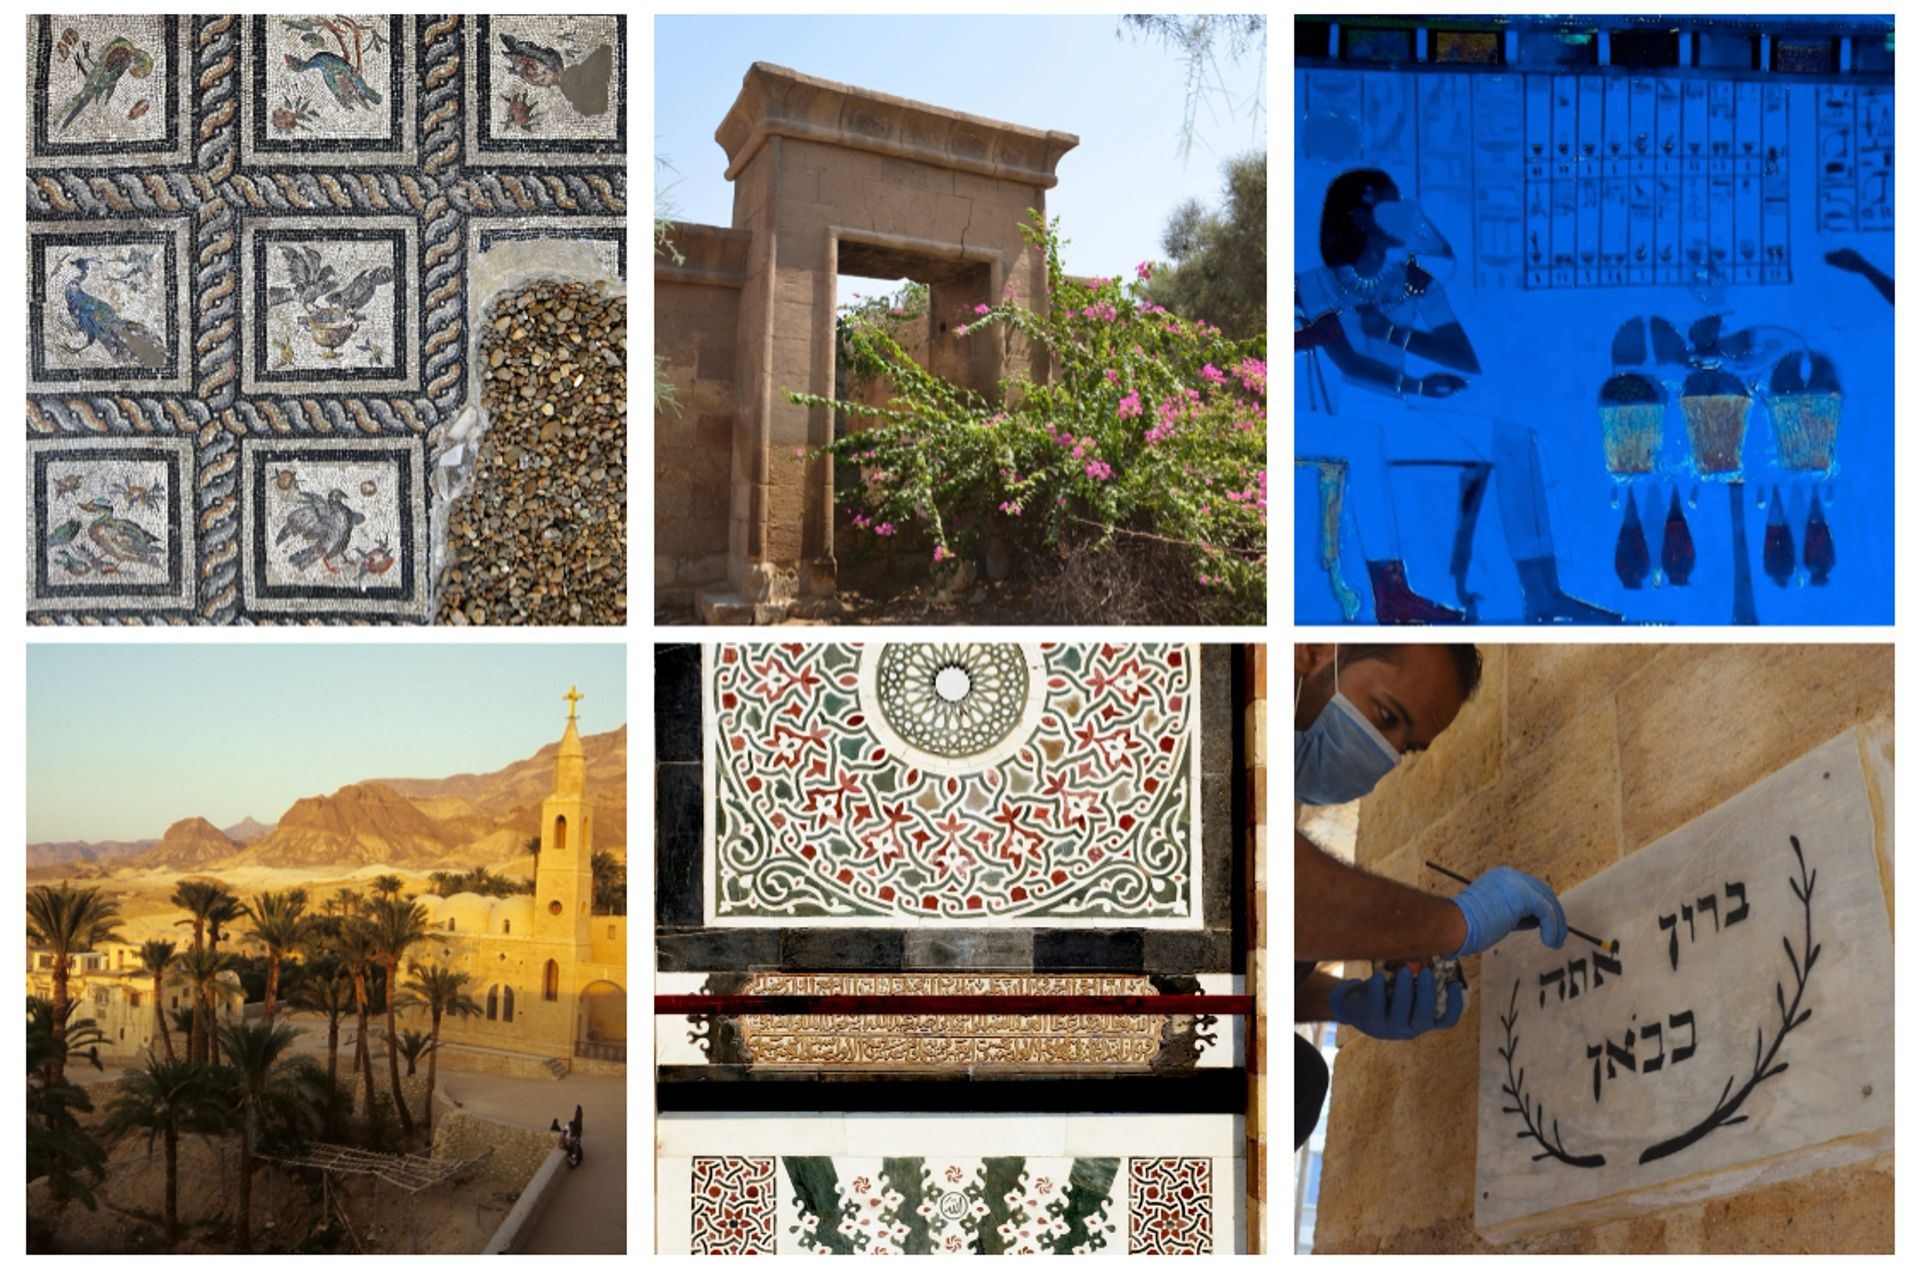 The online platform Preserving Egypt's Layered History  highlights some of the country's most important archaeological sites Courtesy of Google Arts & Culture